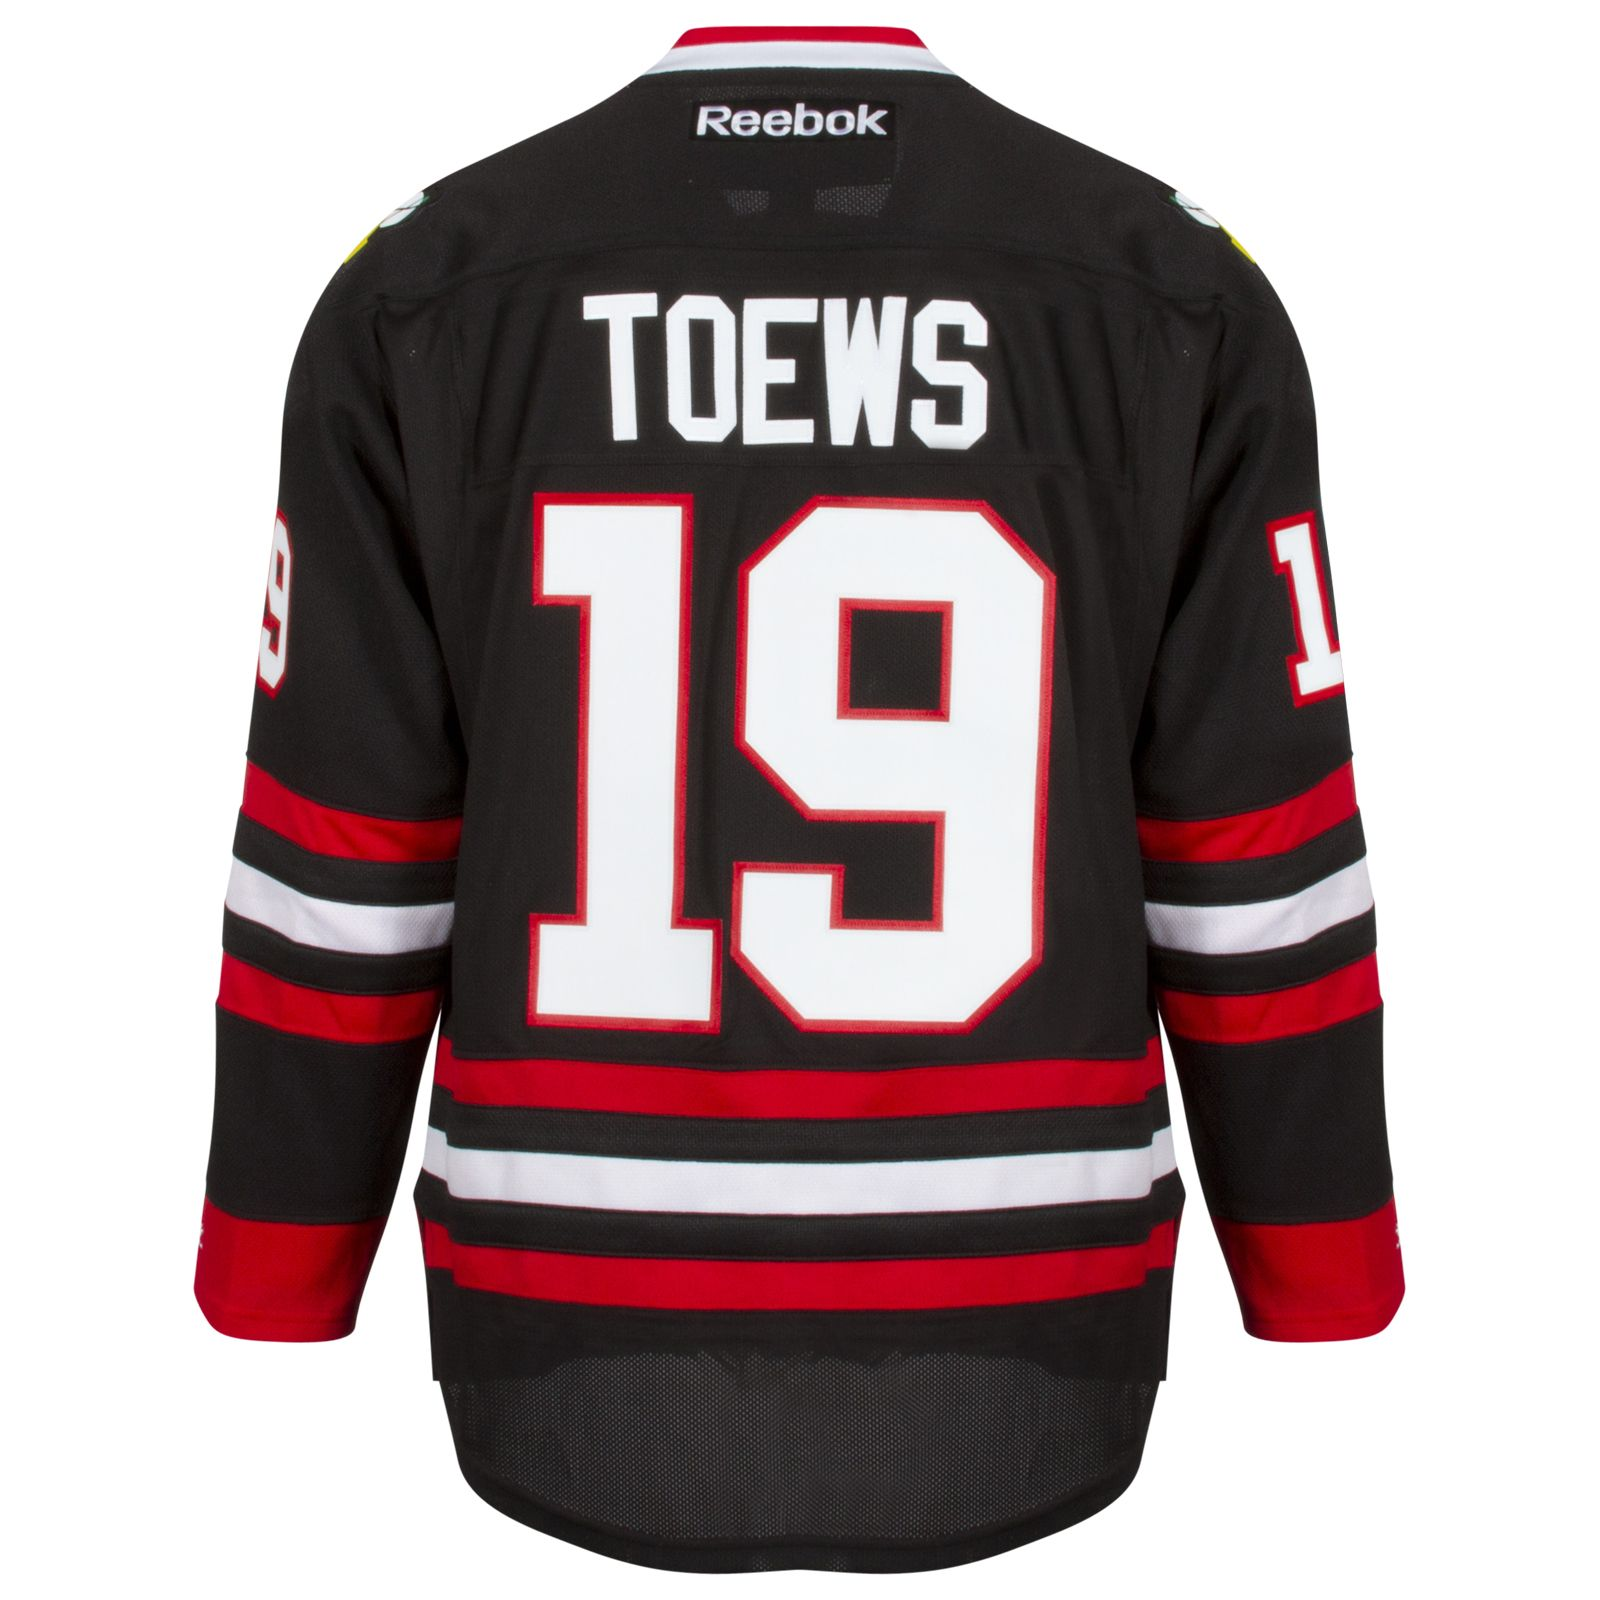 81874cc99 Chicago Blackhawks Mens Black Alternate Jonathan Toews Premier Jersey by  Reebok  Chicago  blackhawks  ChicagoBlackhawks